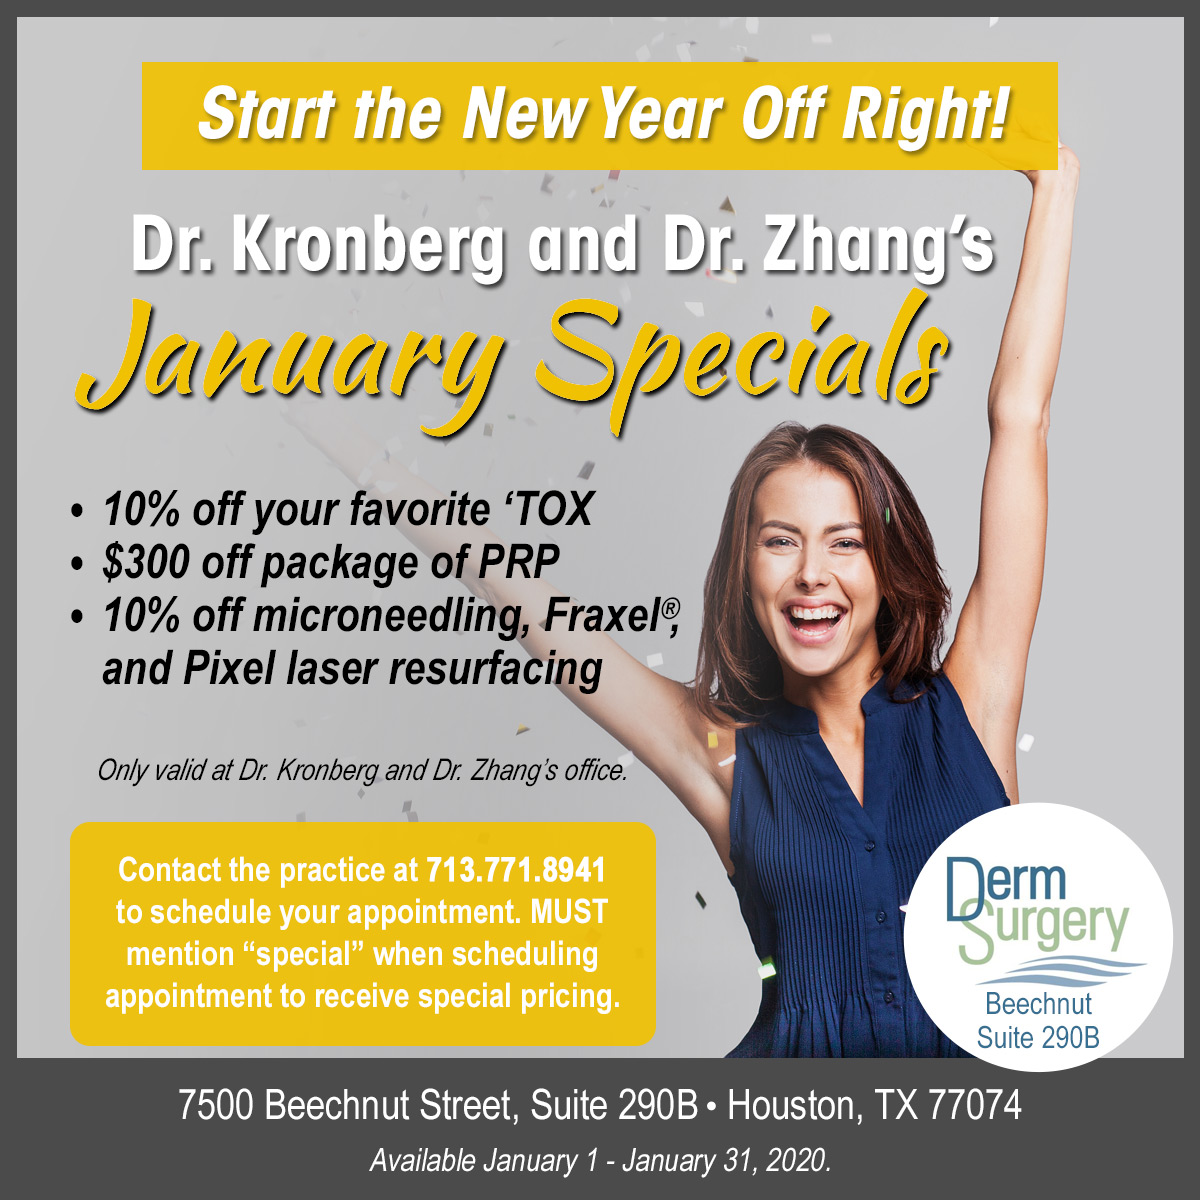 Dr. Kronberg and Dr. Zhang's January Special